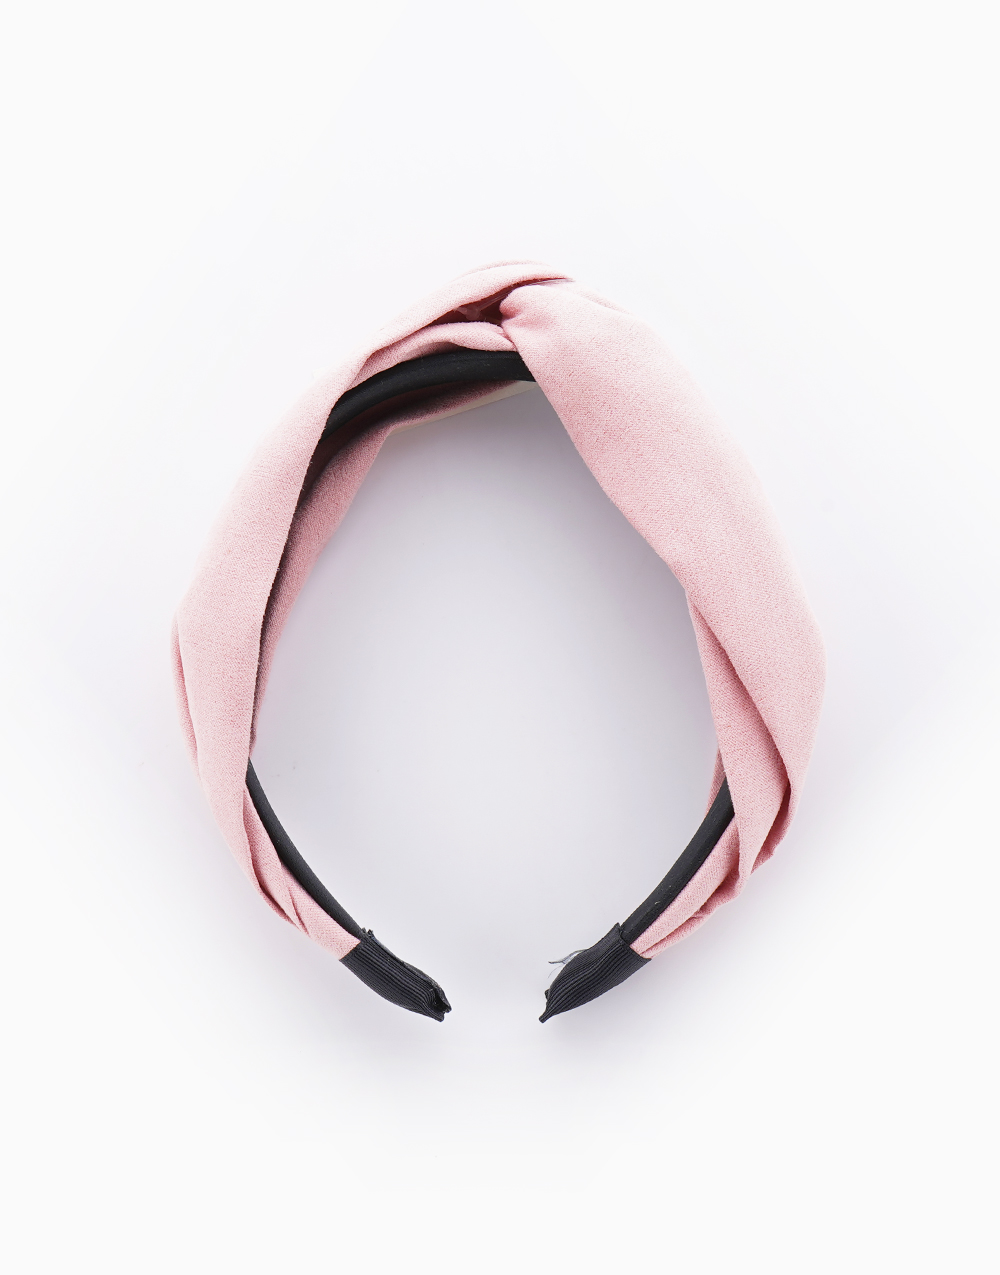 Velvety Twist Hair Band by Honest Tools